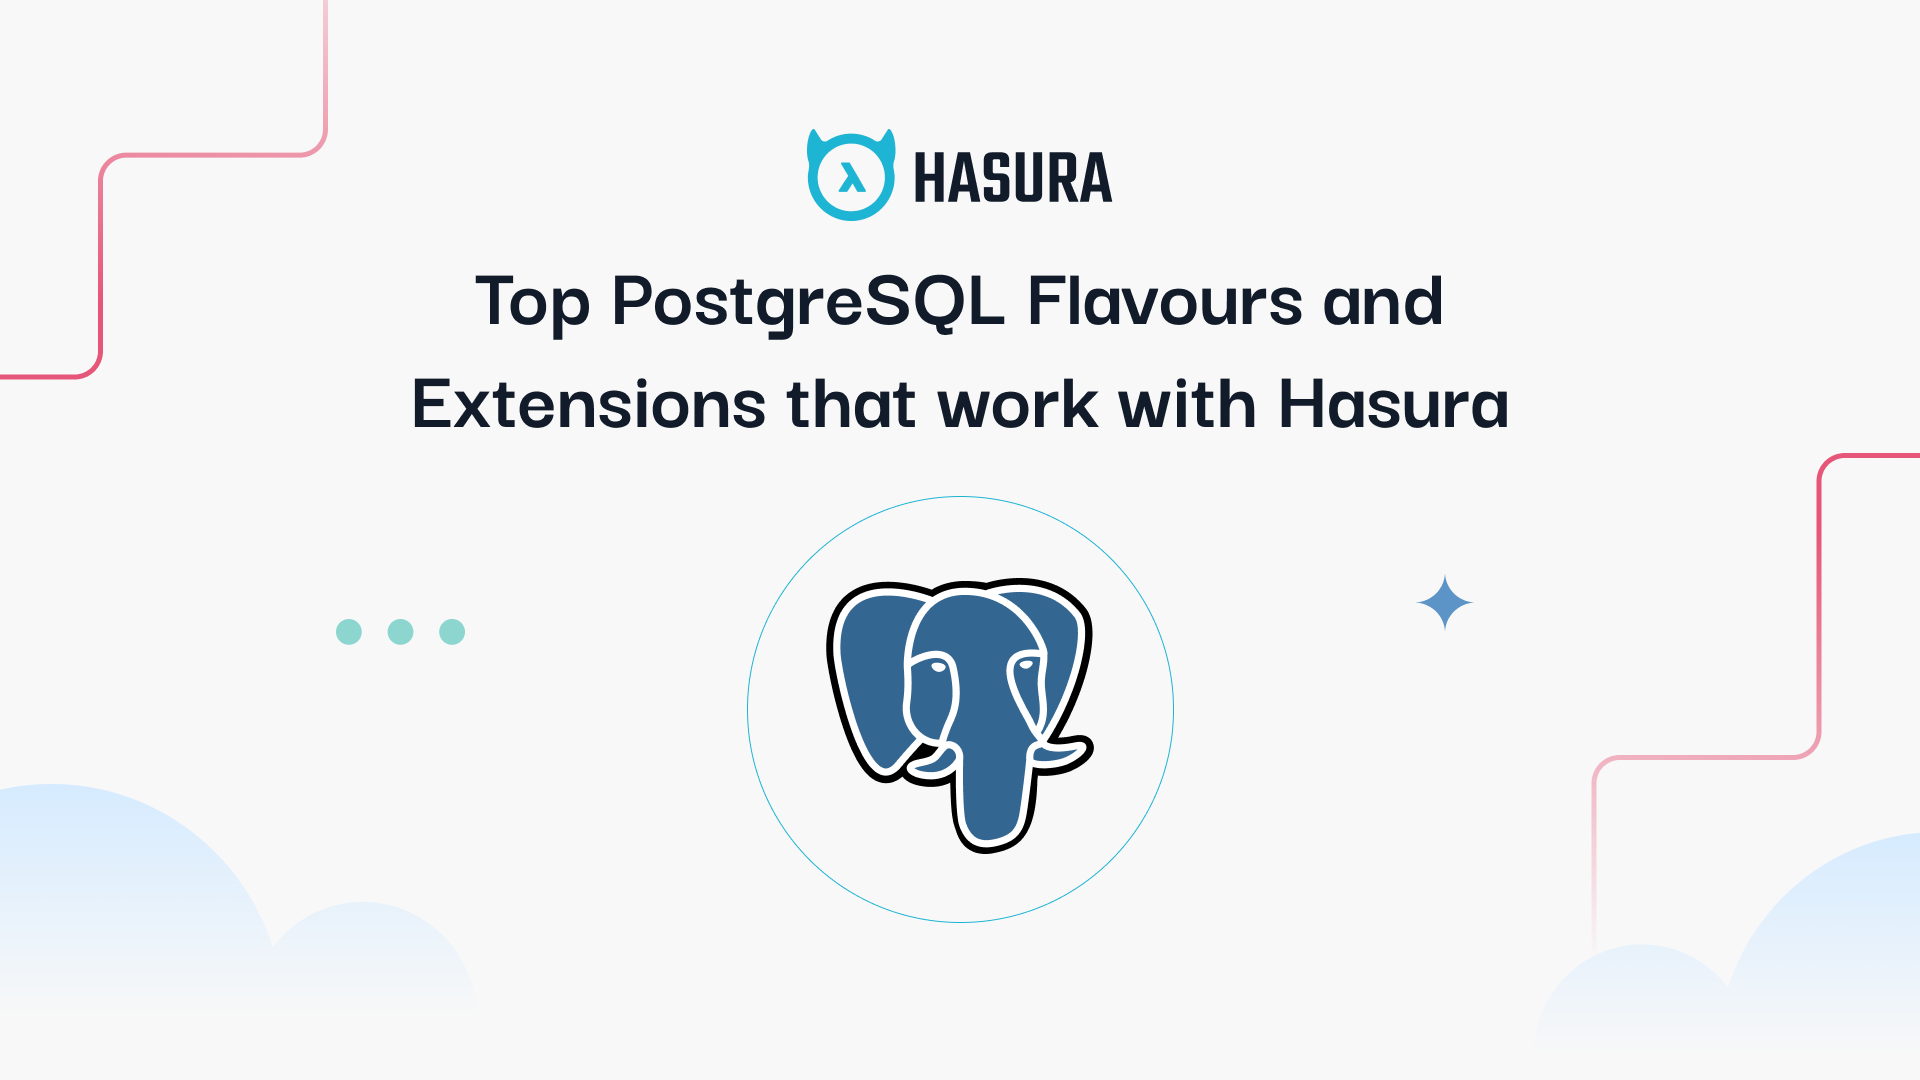 Top PostgreSQL Flavours and Extensions that work with Hasura